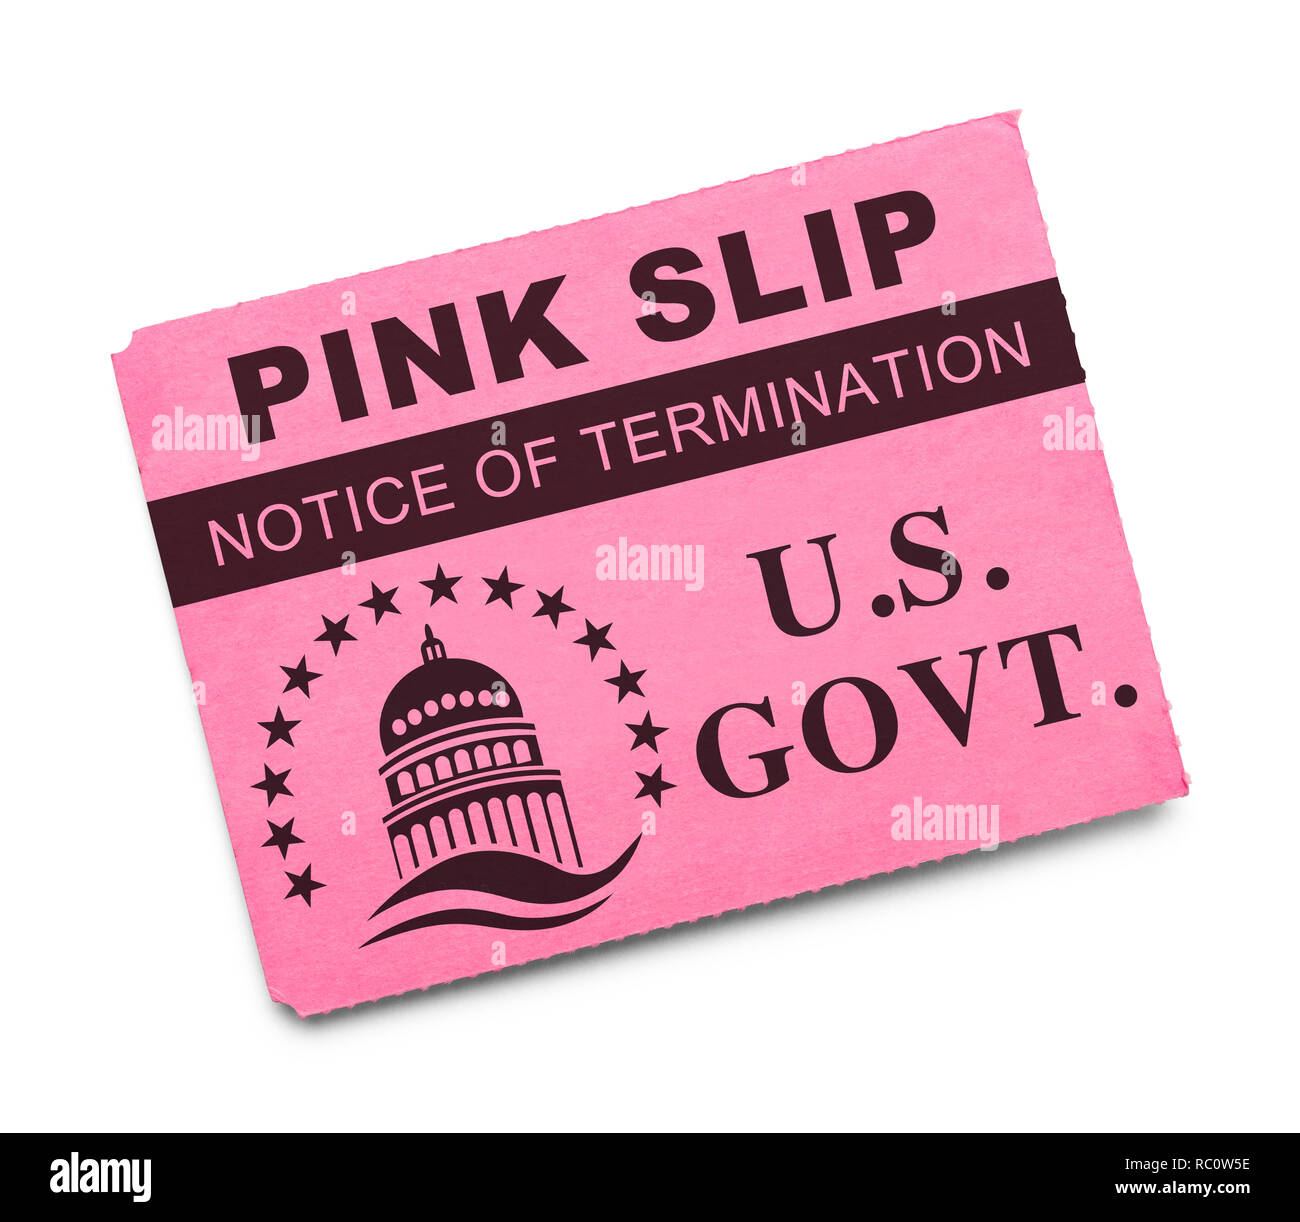 US Government Pink Slip Notice of Termination Isolated on White. - Stock Image